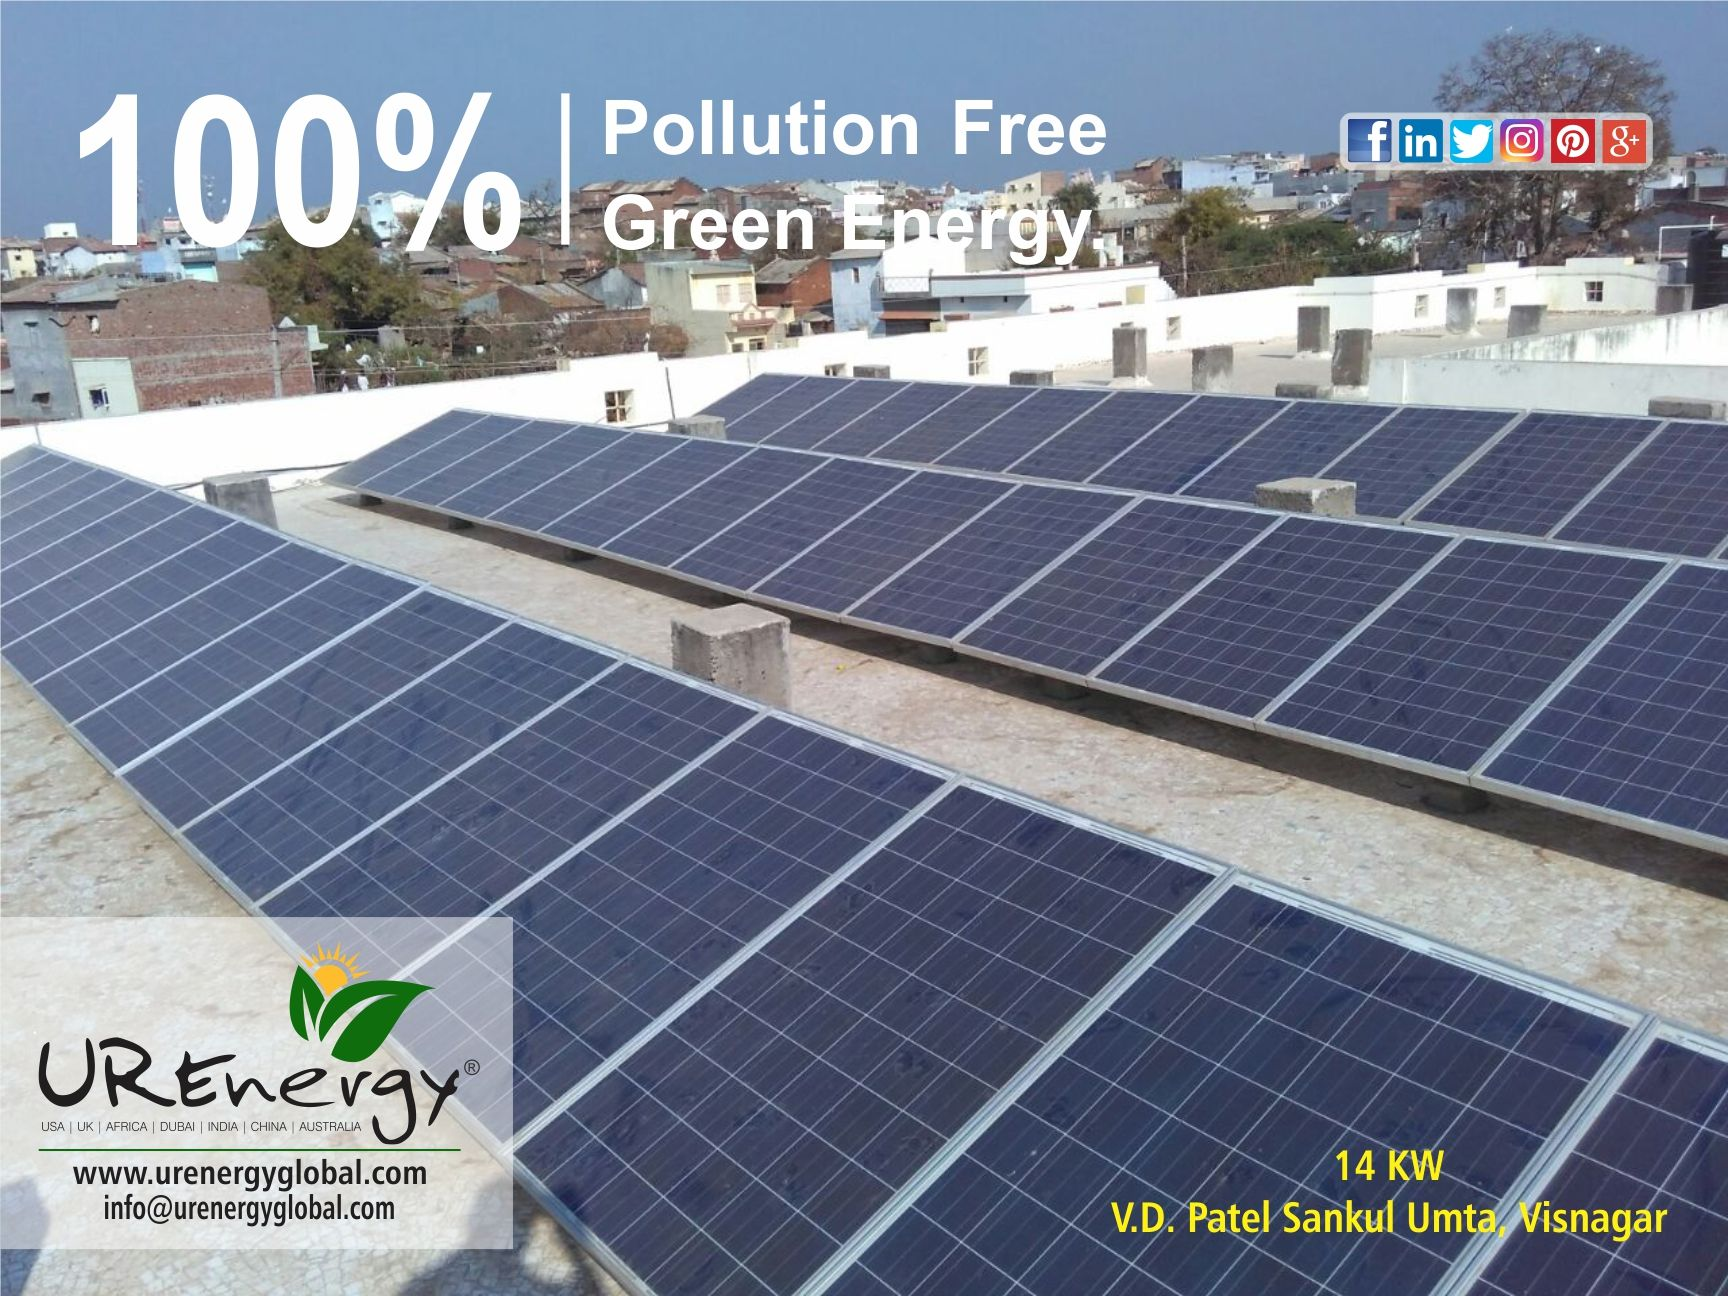 100 Pollution Free Green Energy Urenergy Solar Projects Roof Solar Panel Green Energy